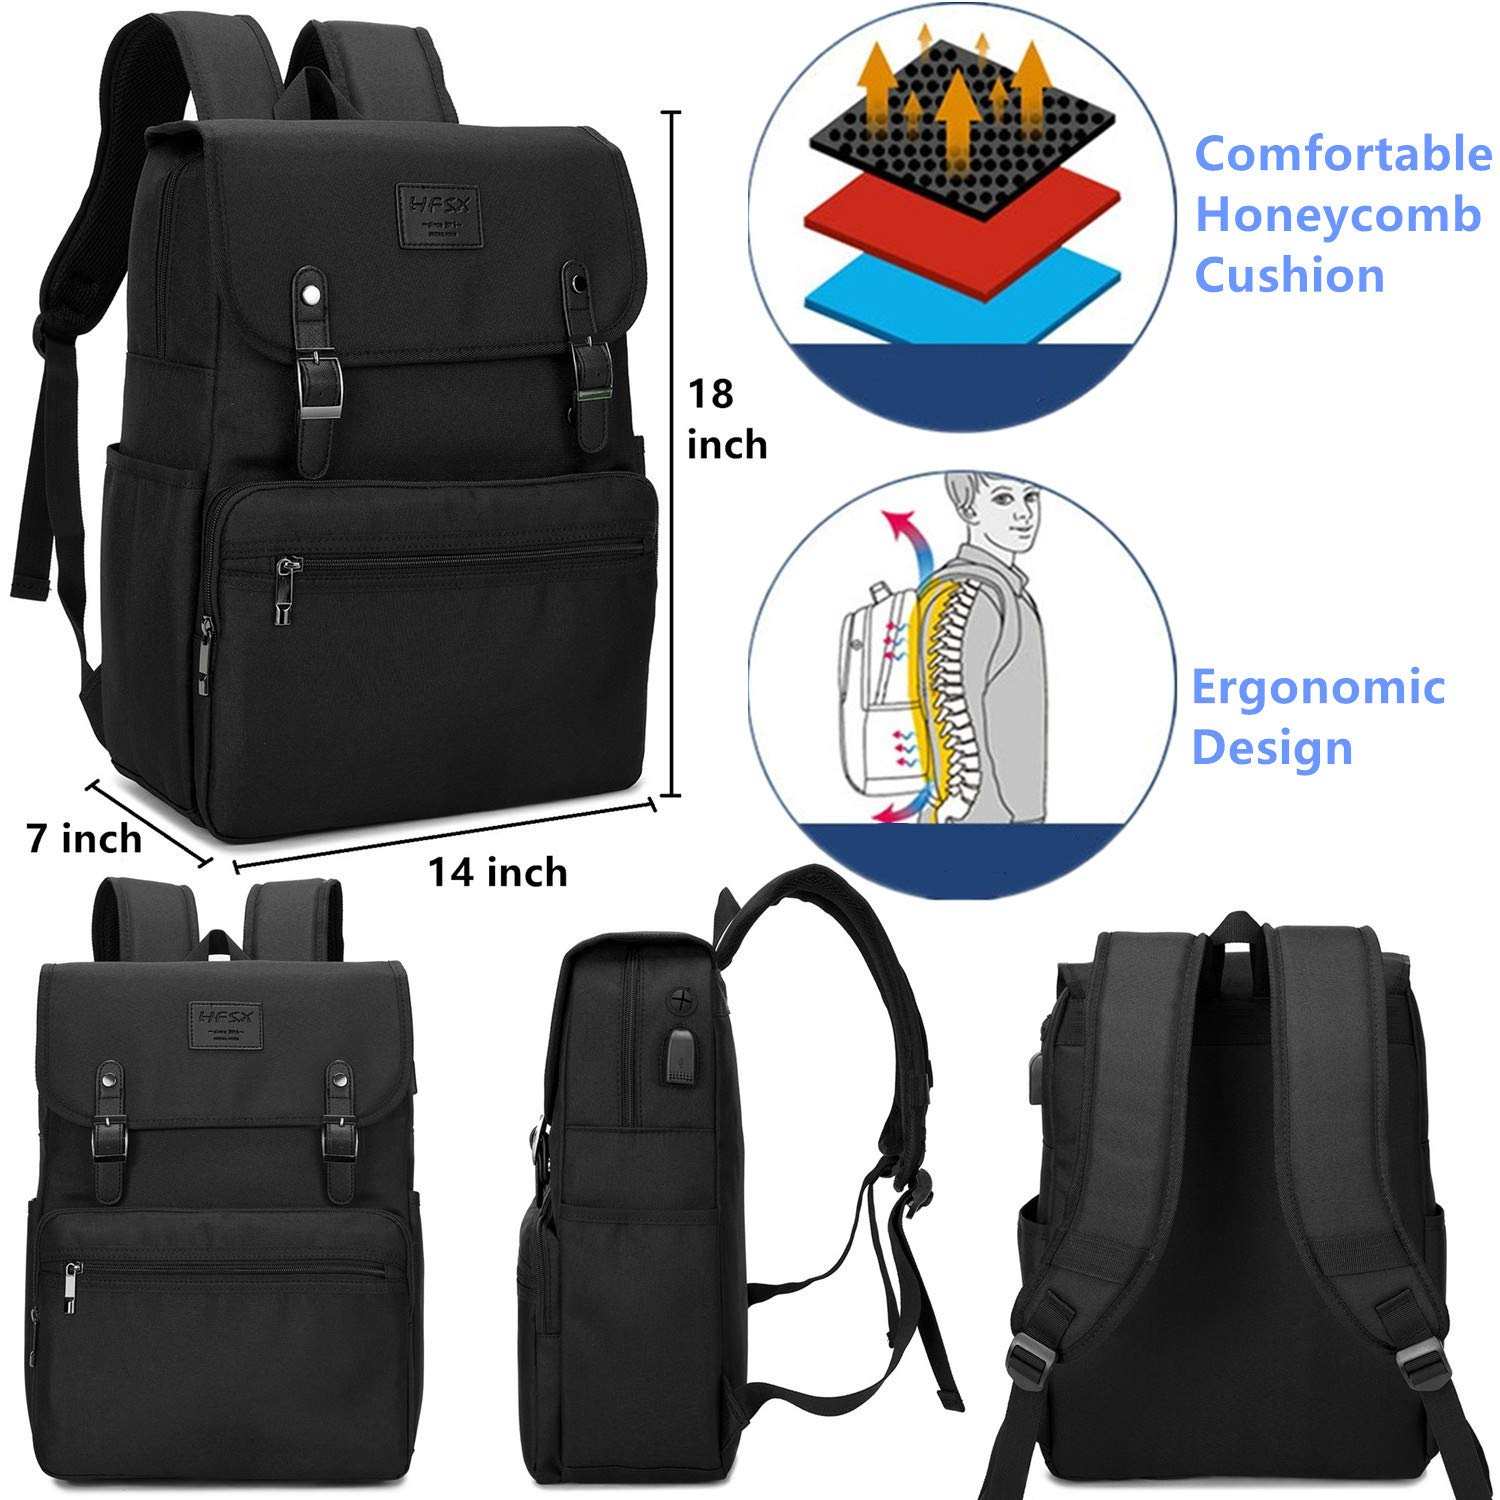 cca91c8e27c1 Laptop Backpack Men Women Business Travel Computer Backpack School College  Bookbag Stylish Water Resistant Vintage Backpack with USB Port Fits 15.6  Inch ...